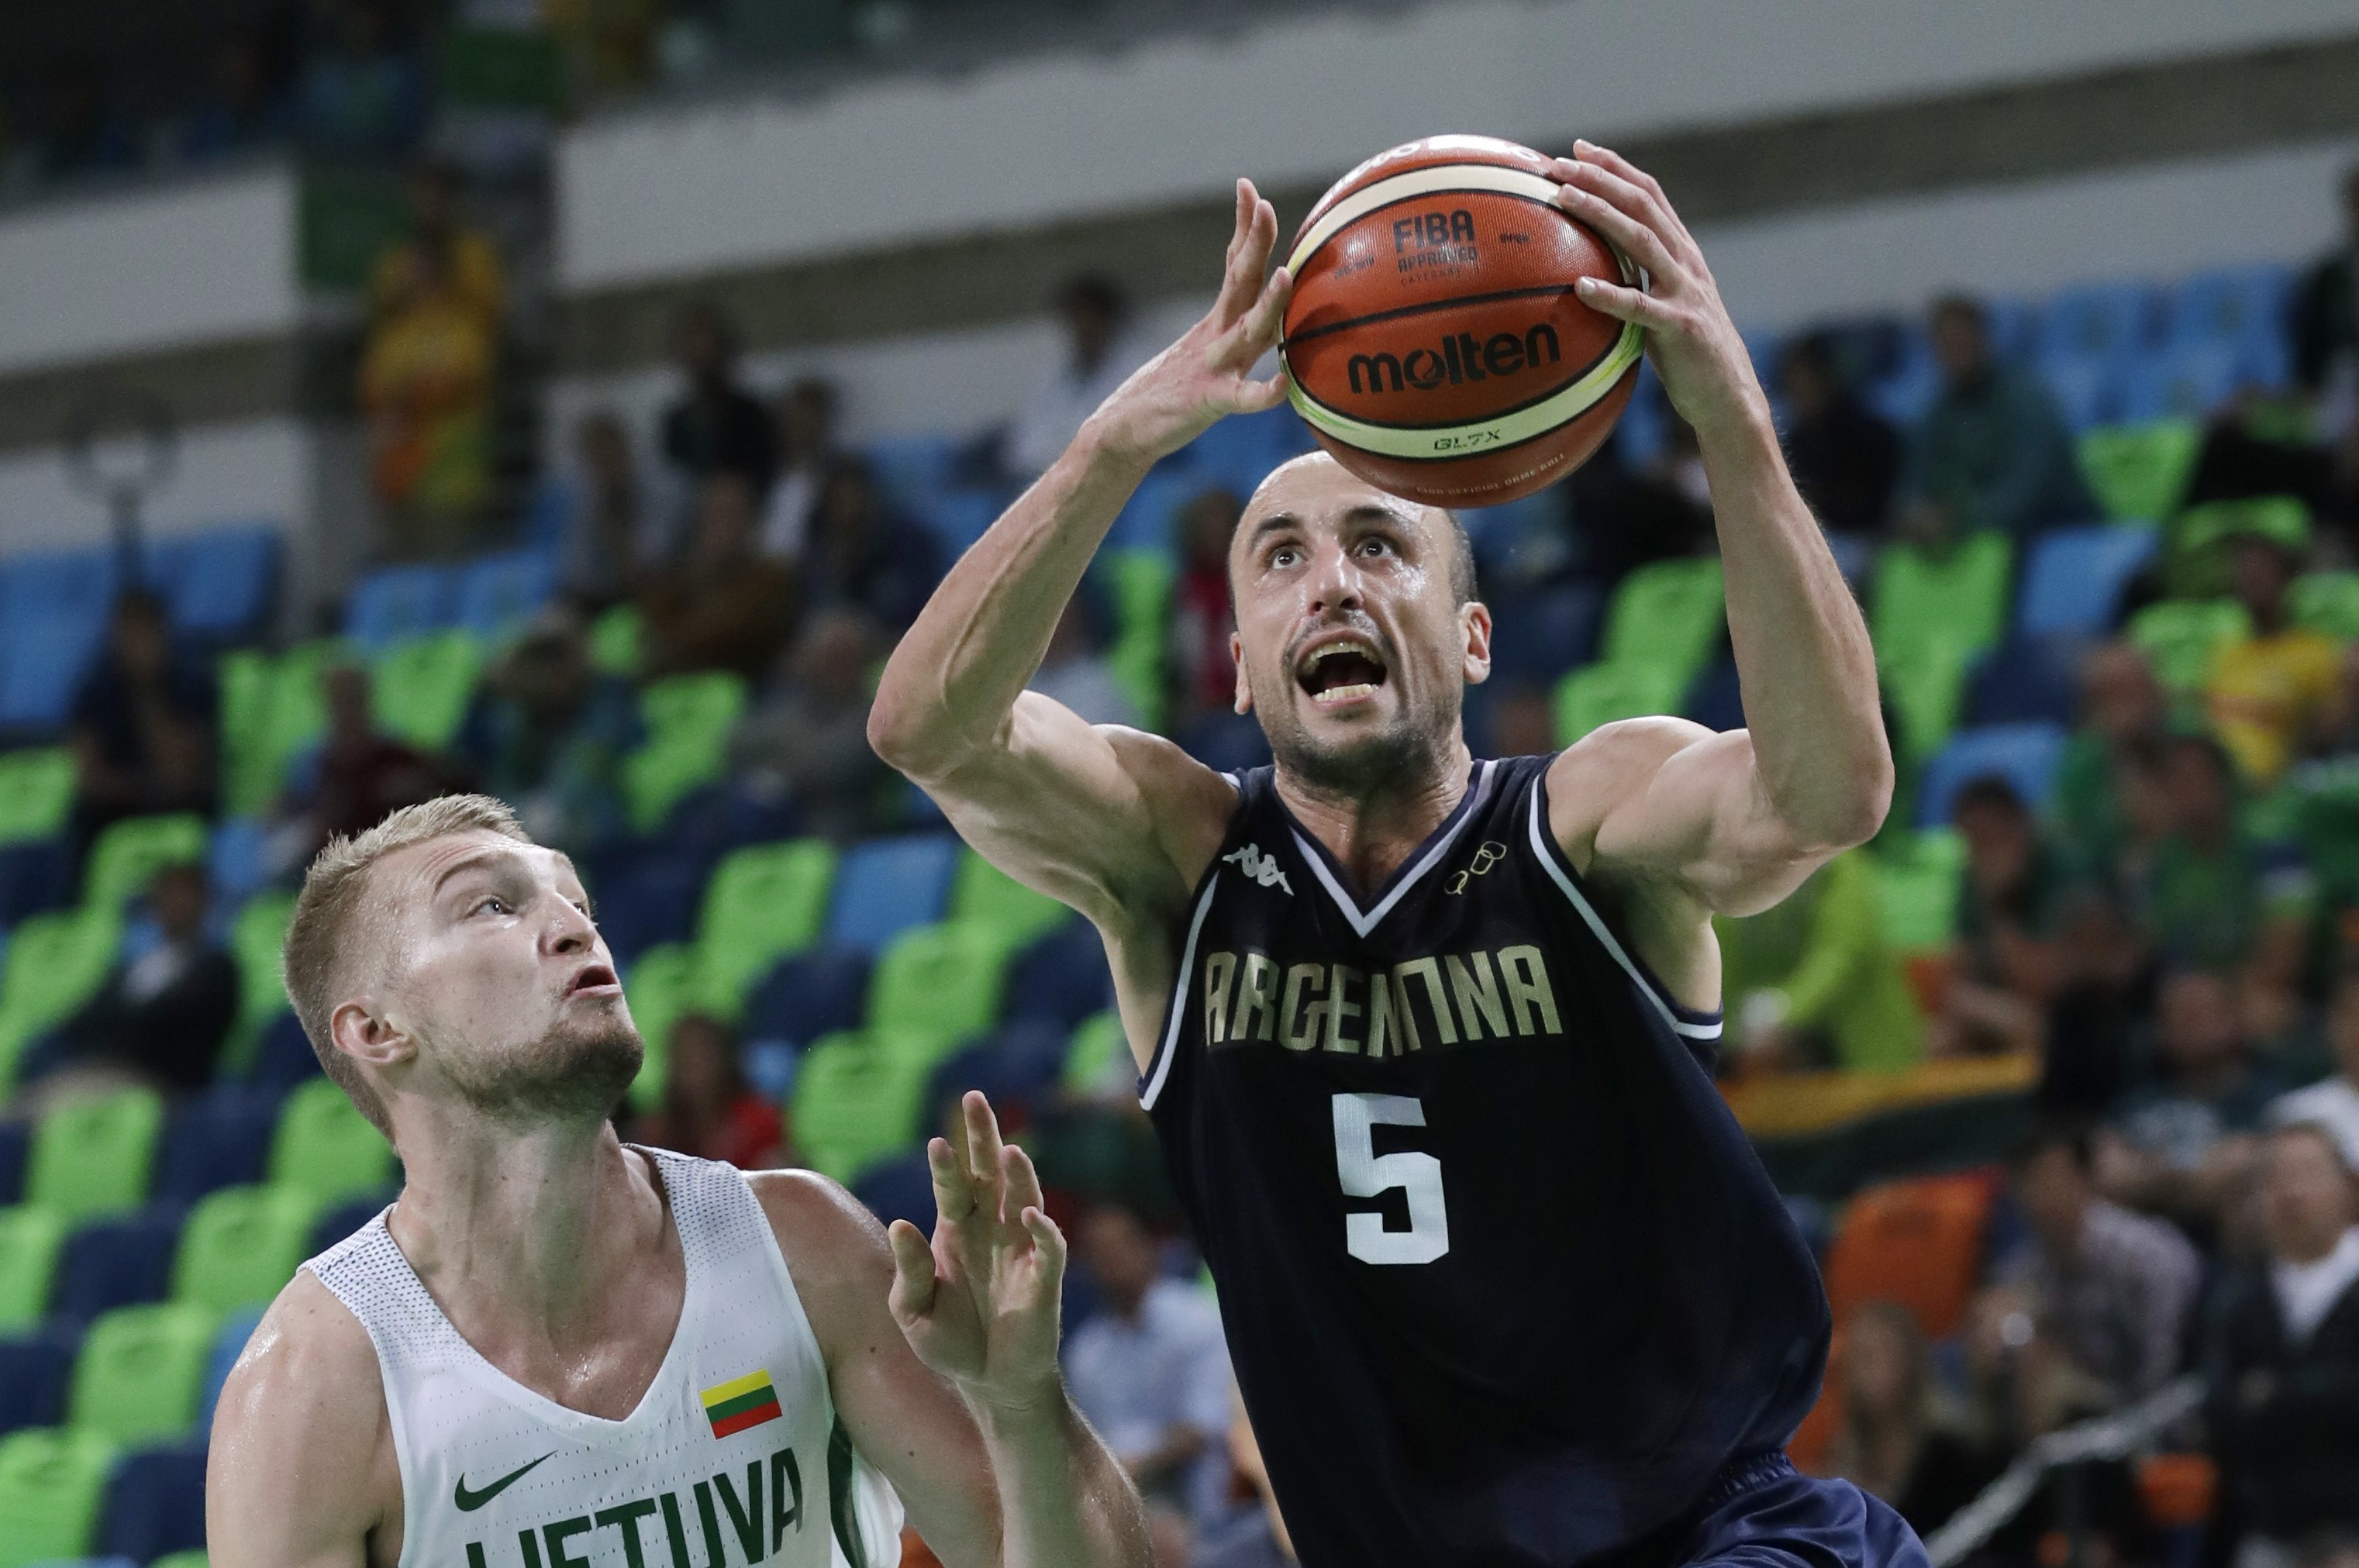 Argentina's Manu Ginobili (5) drives to the basket past Lithuania's Domantas Sabonis (11) during a basketball game at the 2016 Summer Olympics in Rio de Janeiro, Brazil, Thursday, Aug. 11, 2016. (AP Photo/Charlie Neibergall)